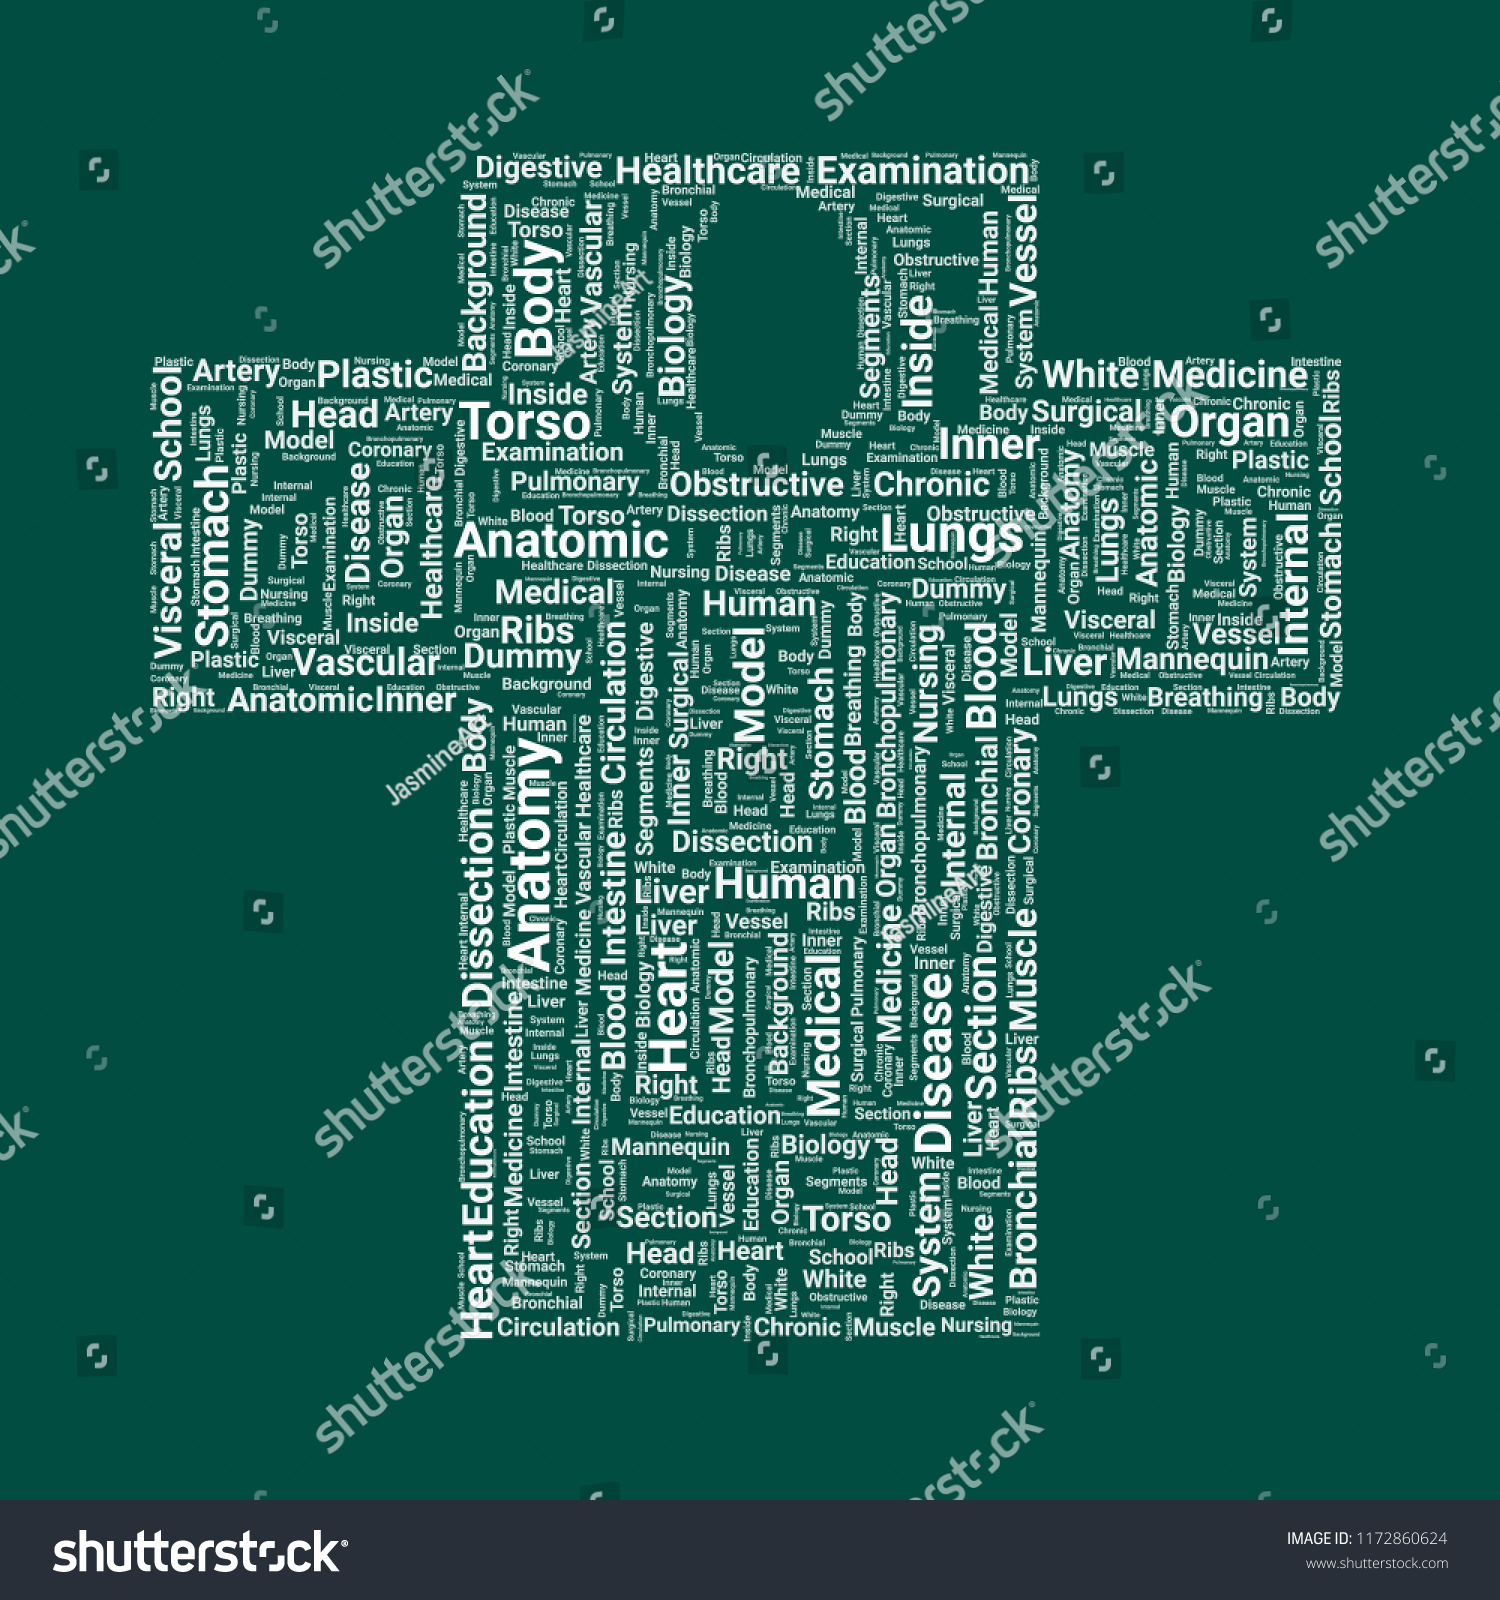 Human Dissection Word Cloud Word Cloud Stock Vector Royalty Free